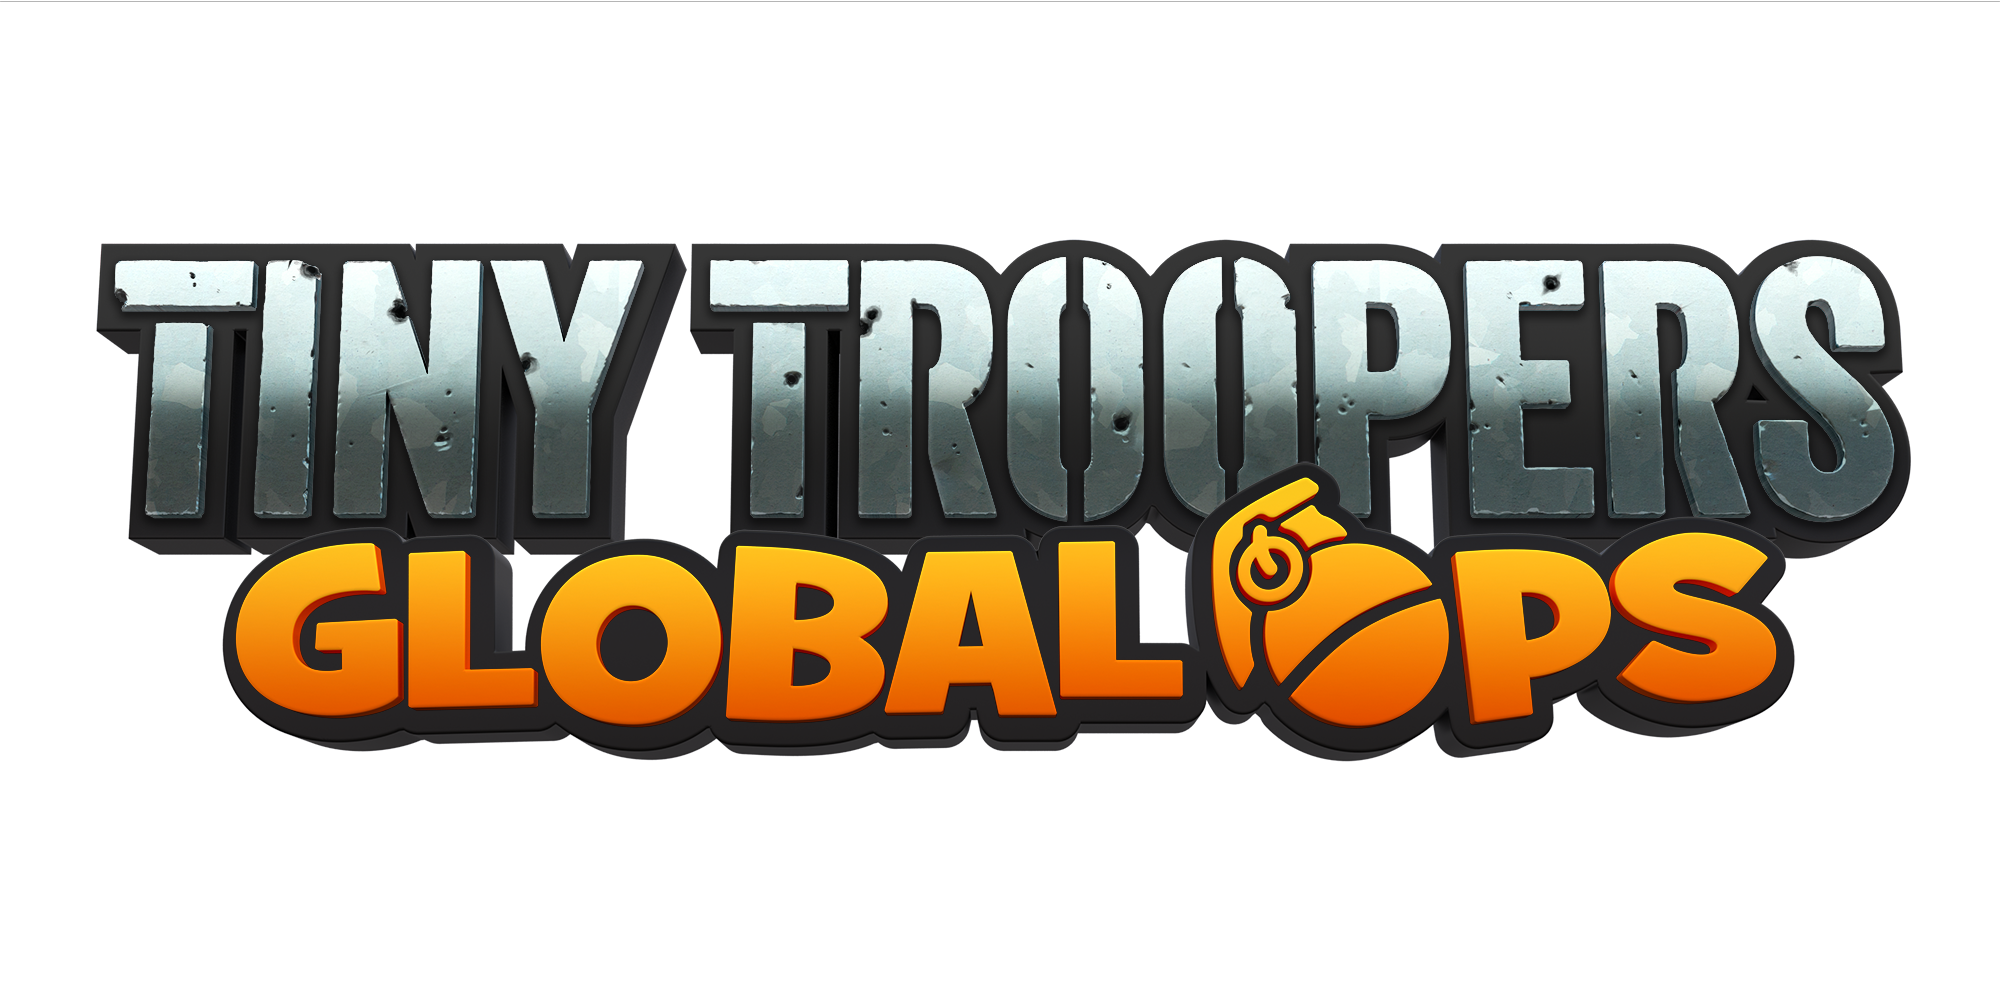 Tiny Troopers Global Ops logo